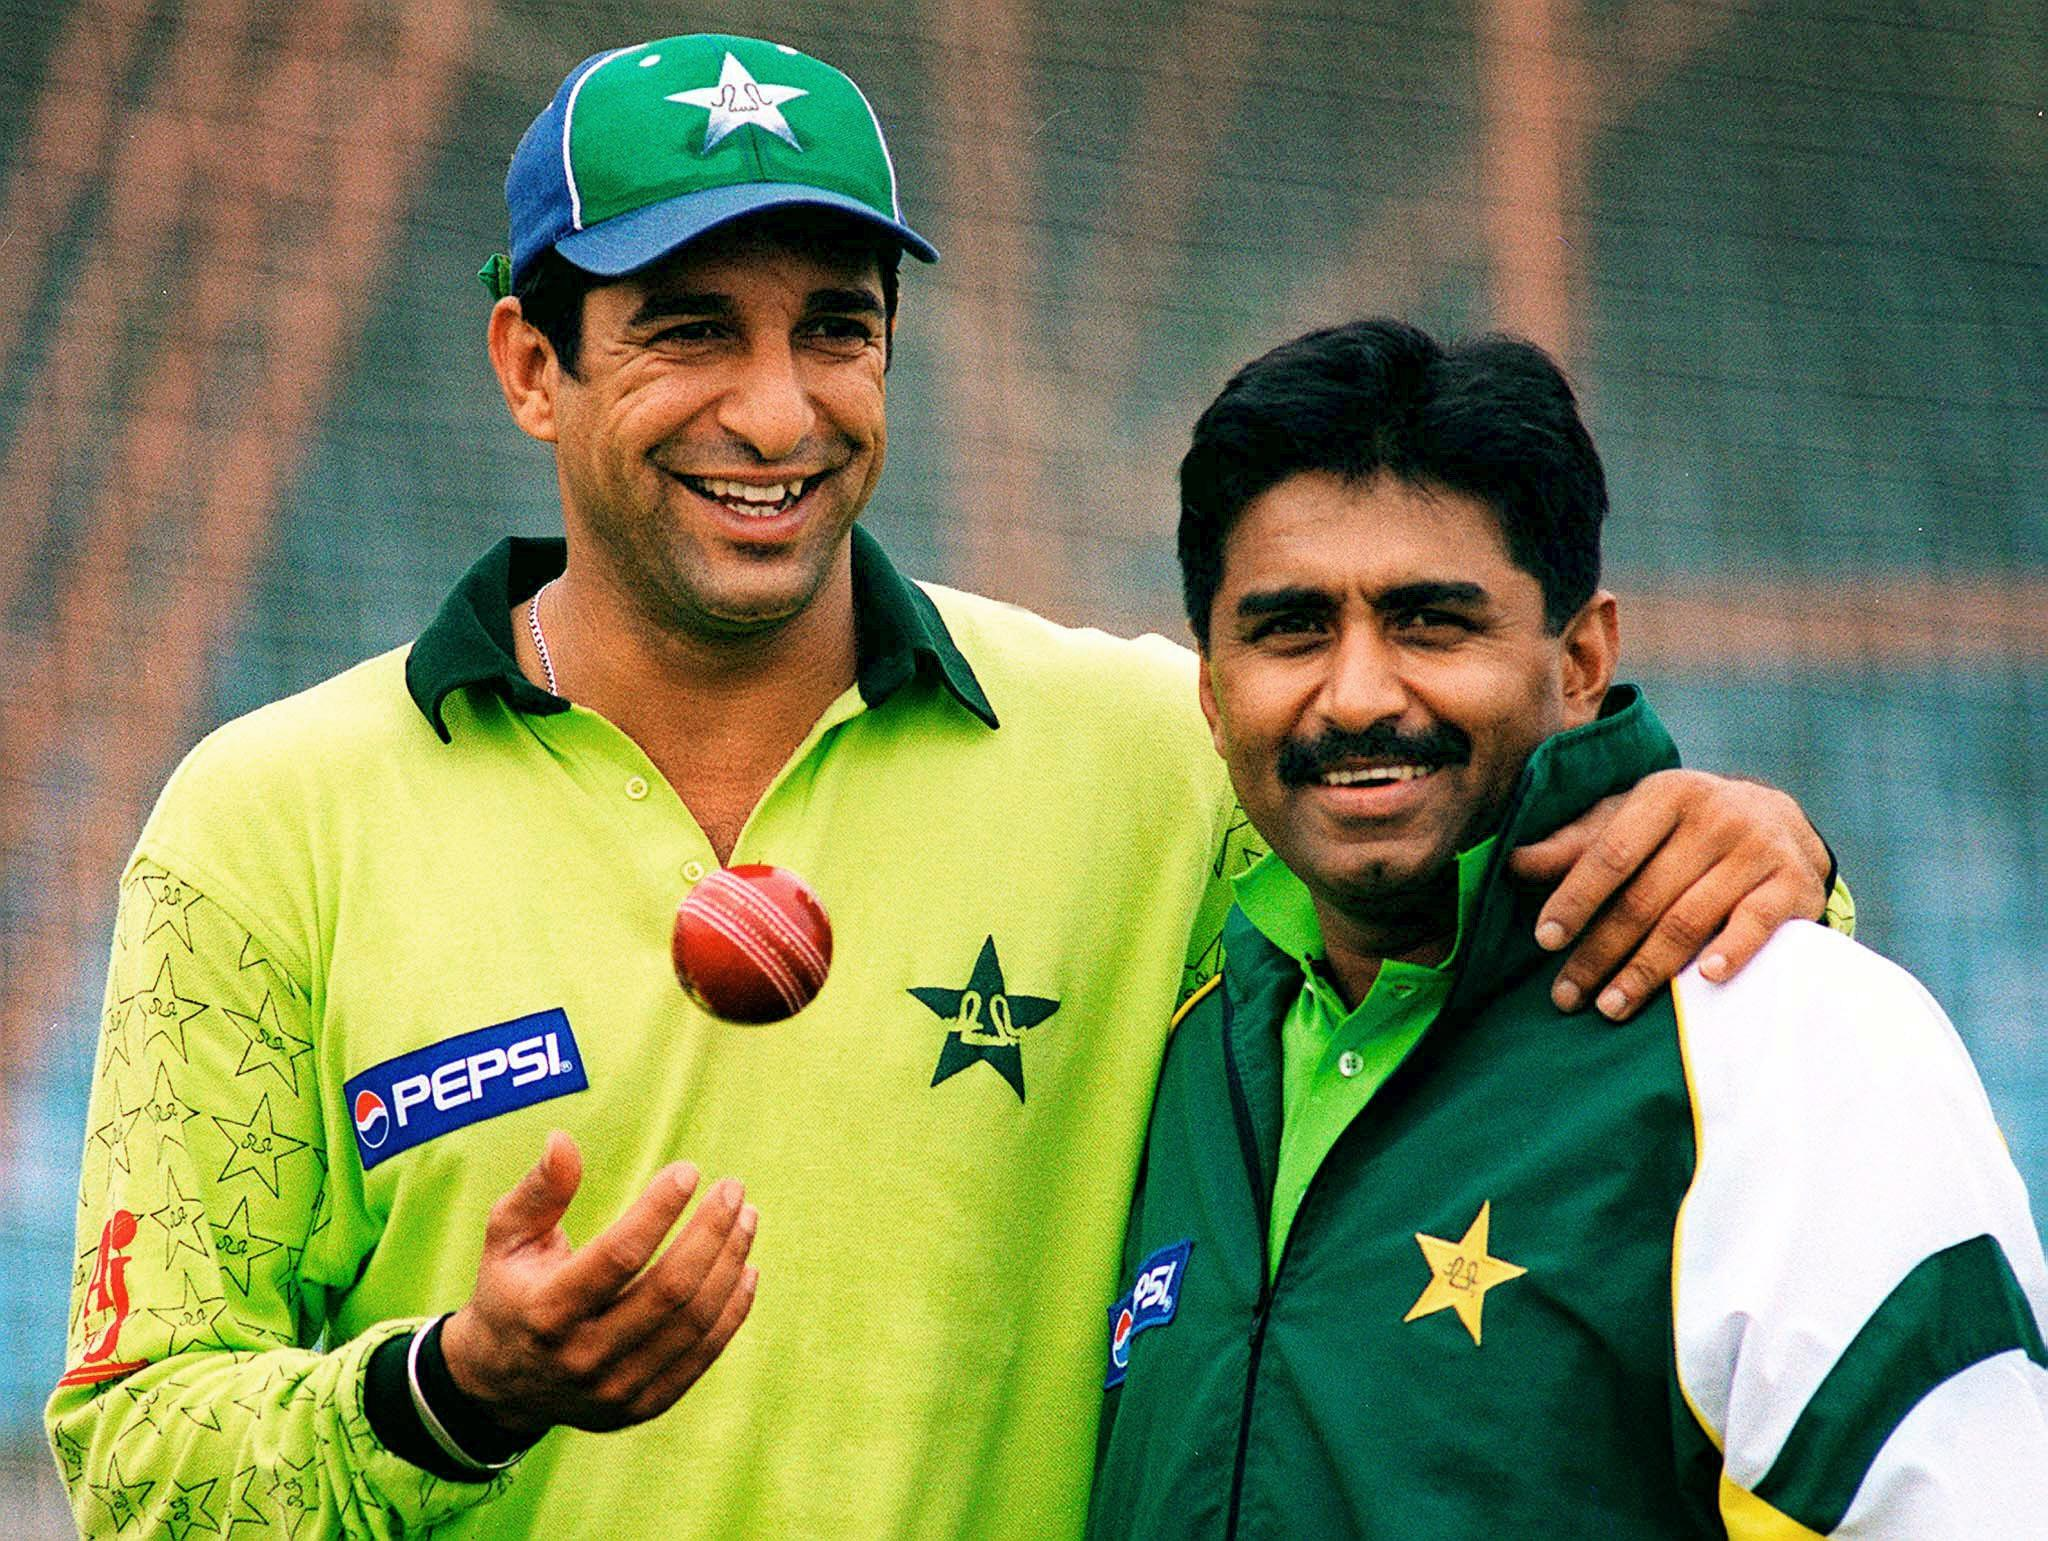 Renowned Pakistani pacer Wasim Akram (L) toss a ball while posing with his team coach and former captain Javed Miandad in the eastern city of Lahore, 26 November 2000. Akram will be the third Pakistani after Miandad and Salim Malik and the 23rd cricketer in the world to cross three-figure mark of Tests in the 2nd Test against England in Faisalabad 29 November. AFP PHOTO/Arif ALI / AFP PHOTO / ALI ARIF